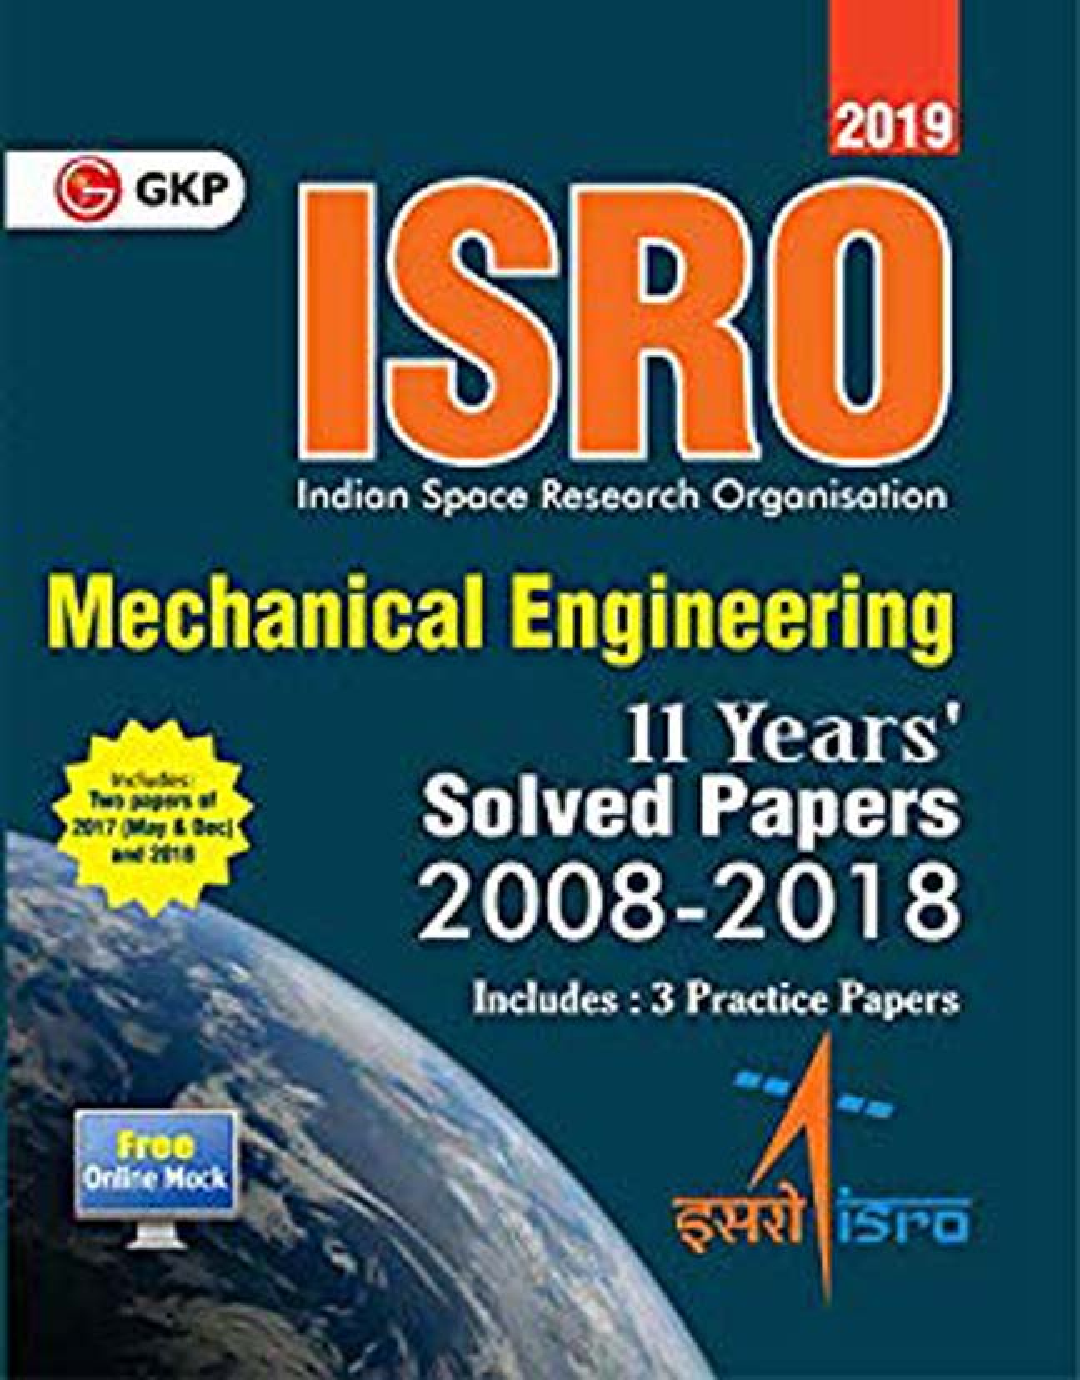 ISRO 2019 Mechanical Engineering Previous Years Solved Papers (2008-2018) - Page 1